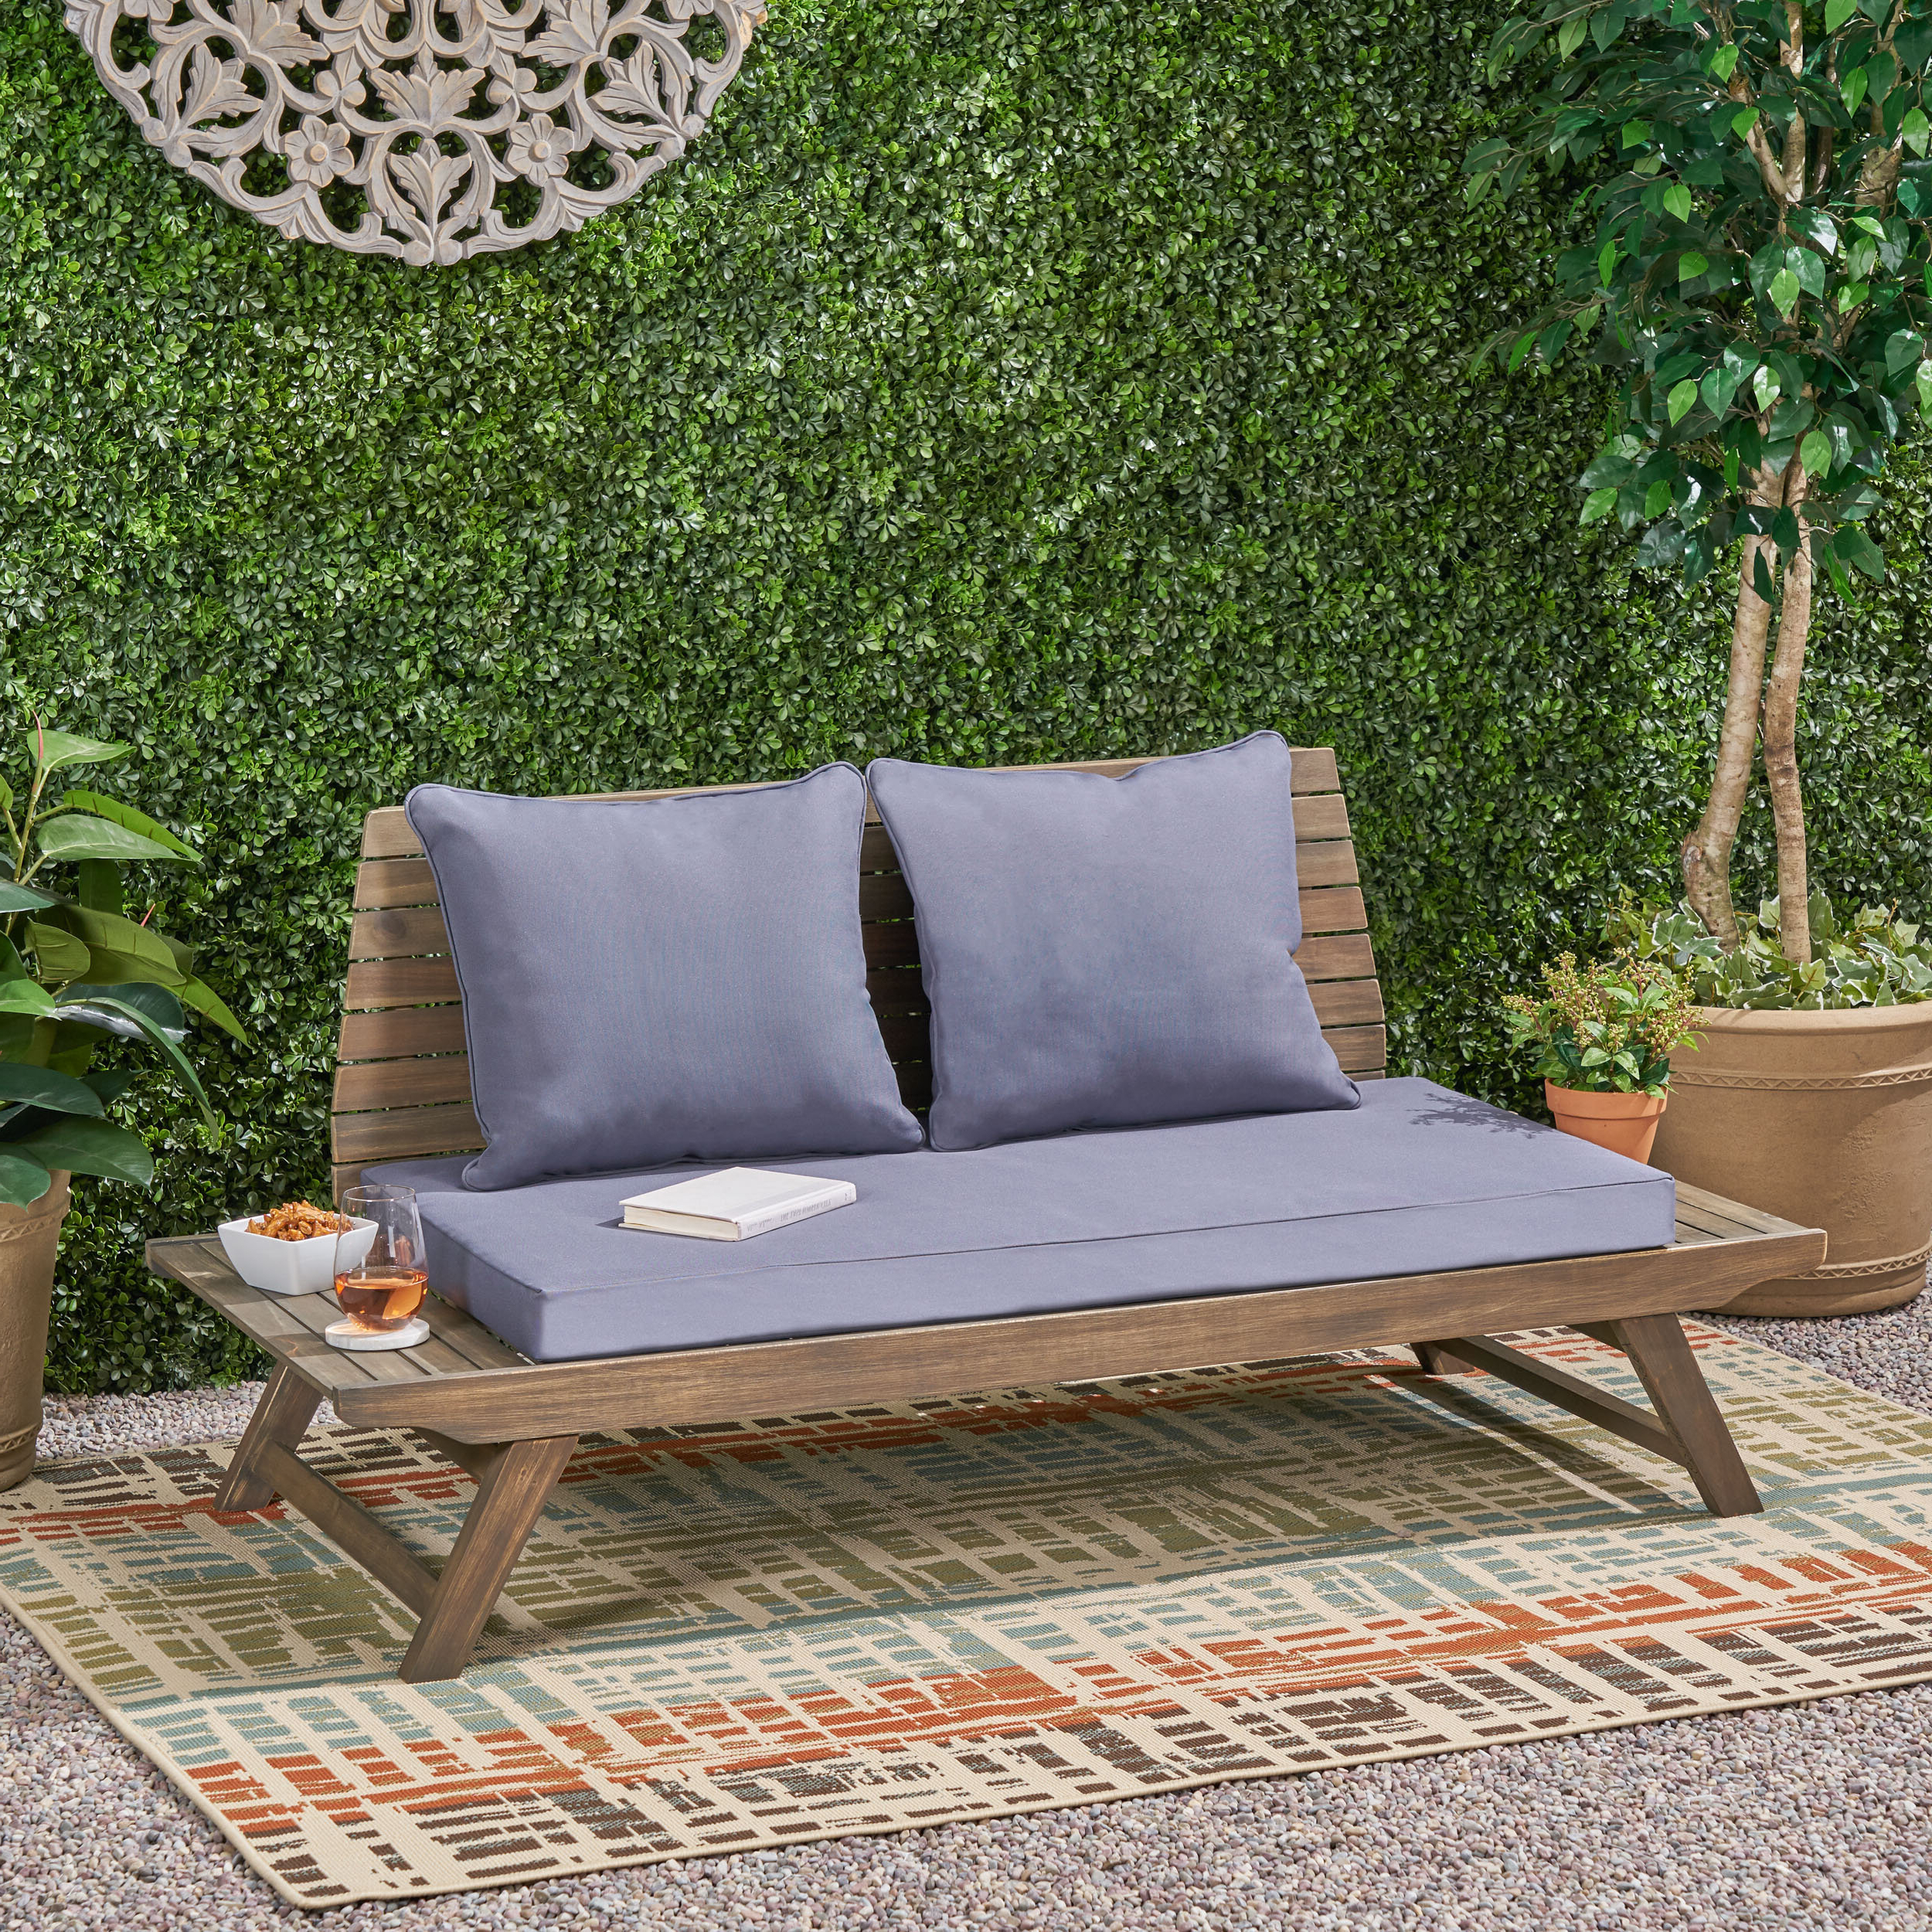 2019 Bullock Outdoor Wooden Loveseat With Cushions Inside Bullock Outdoor Wooden Loveseats With Cushions (View 1 of 20)